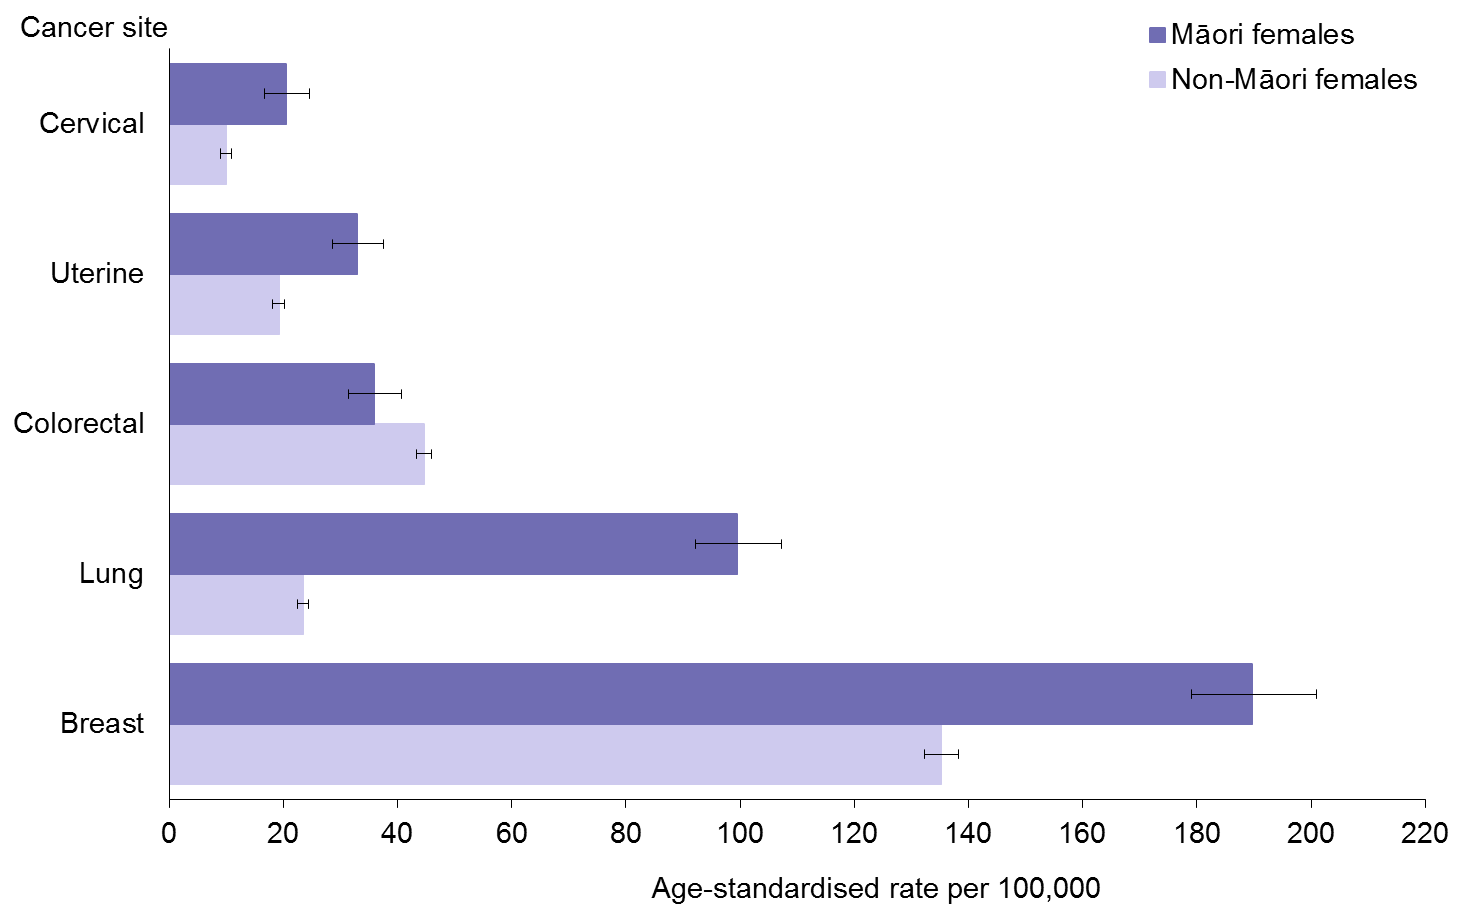 Title: Figure 8: Female cancer registration rates, by site, 25+ years, Māori and non-Māori,